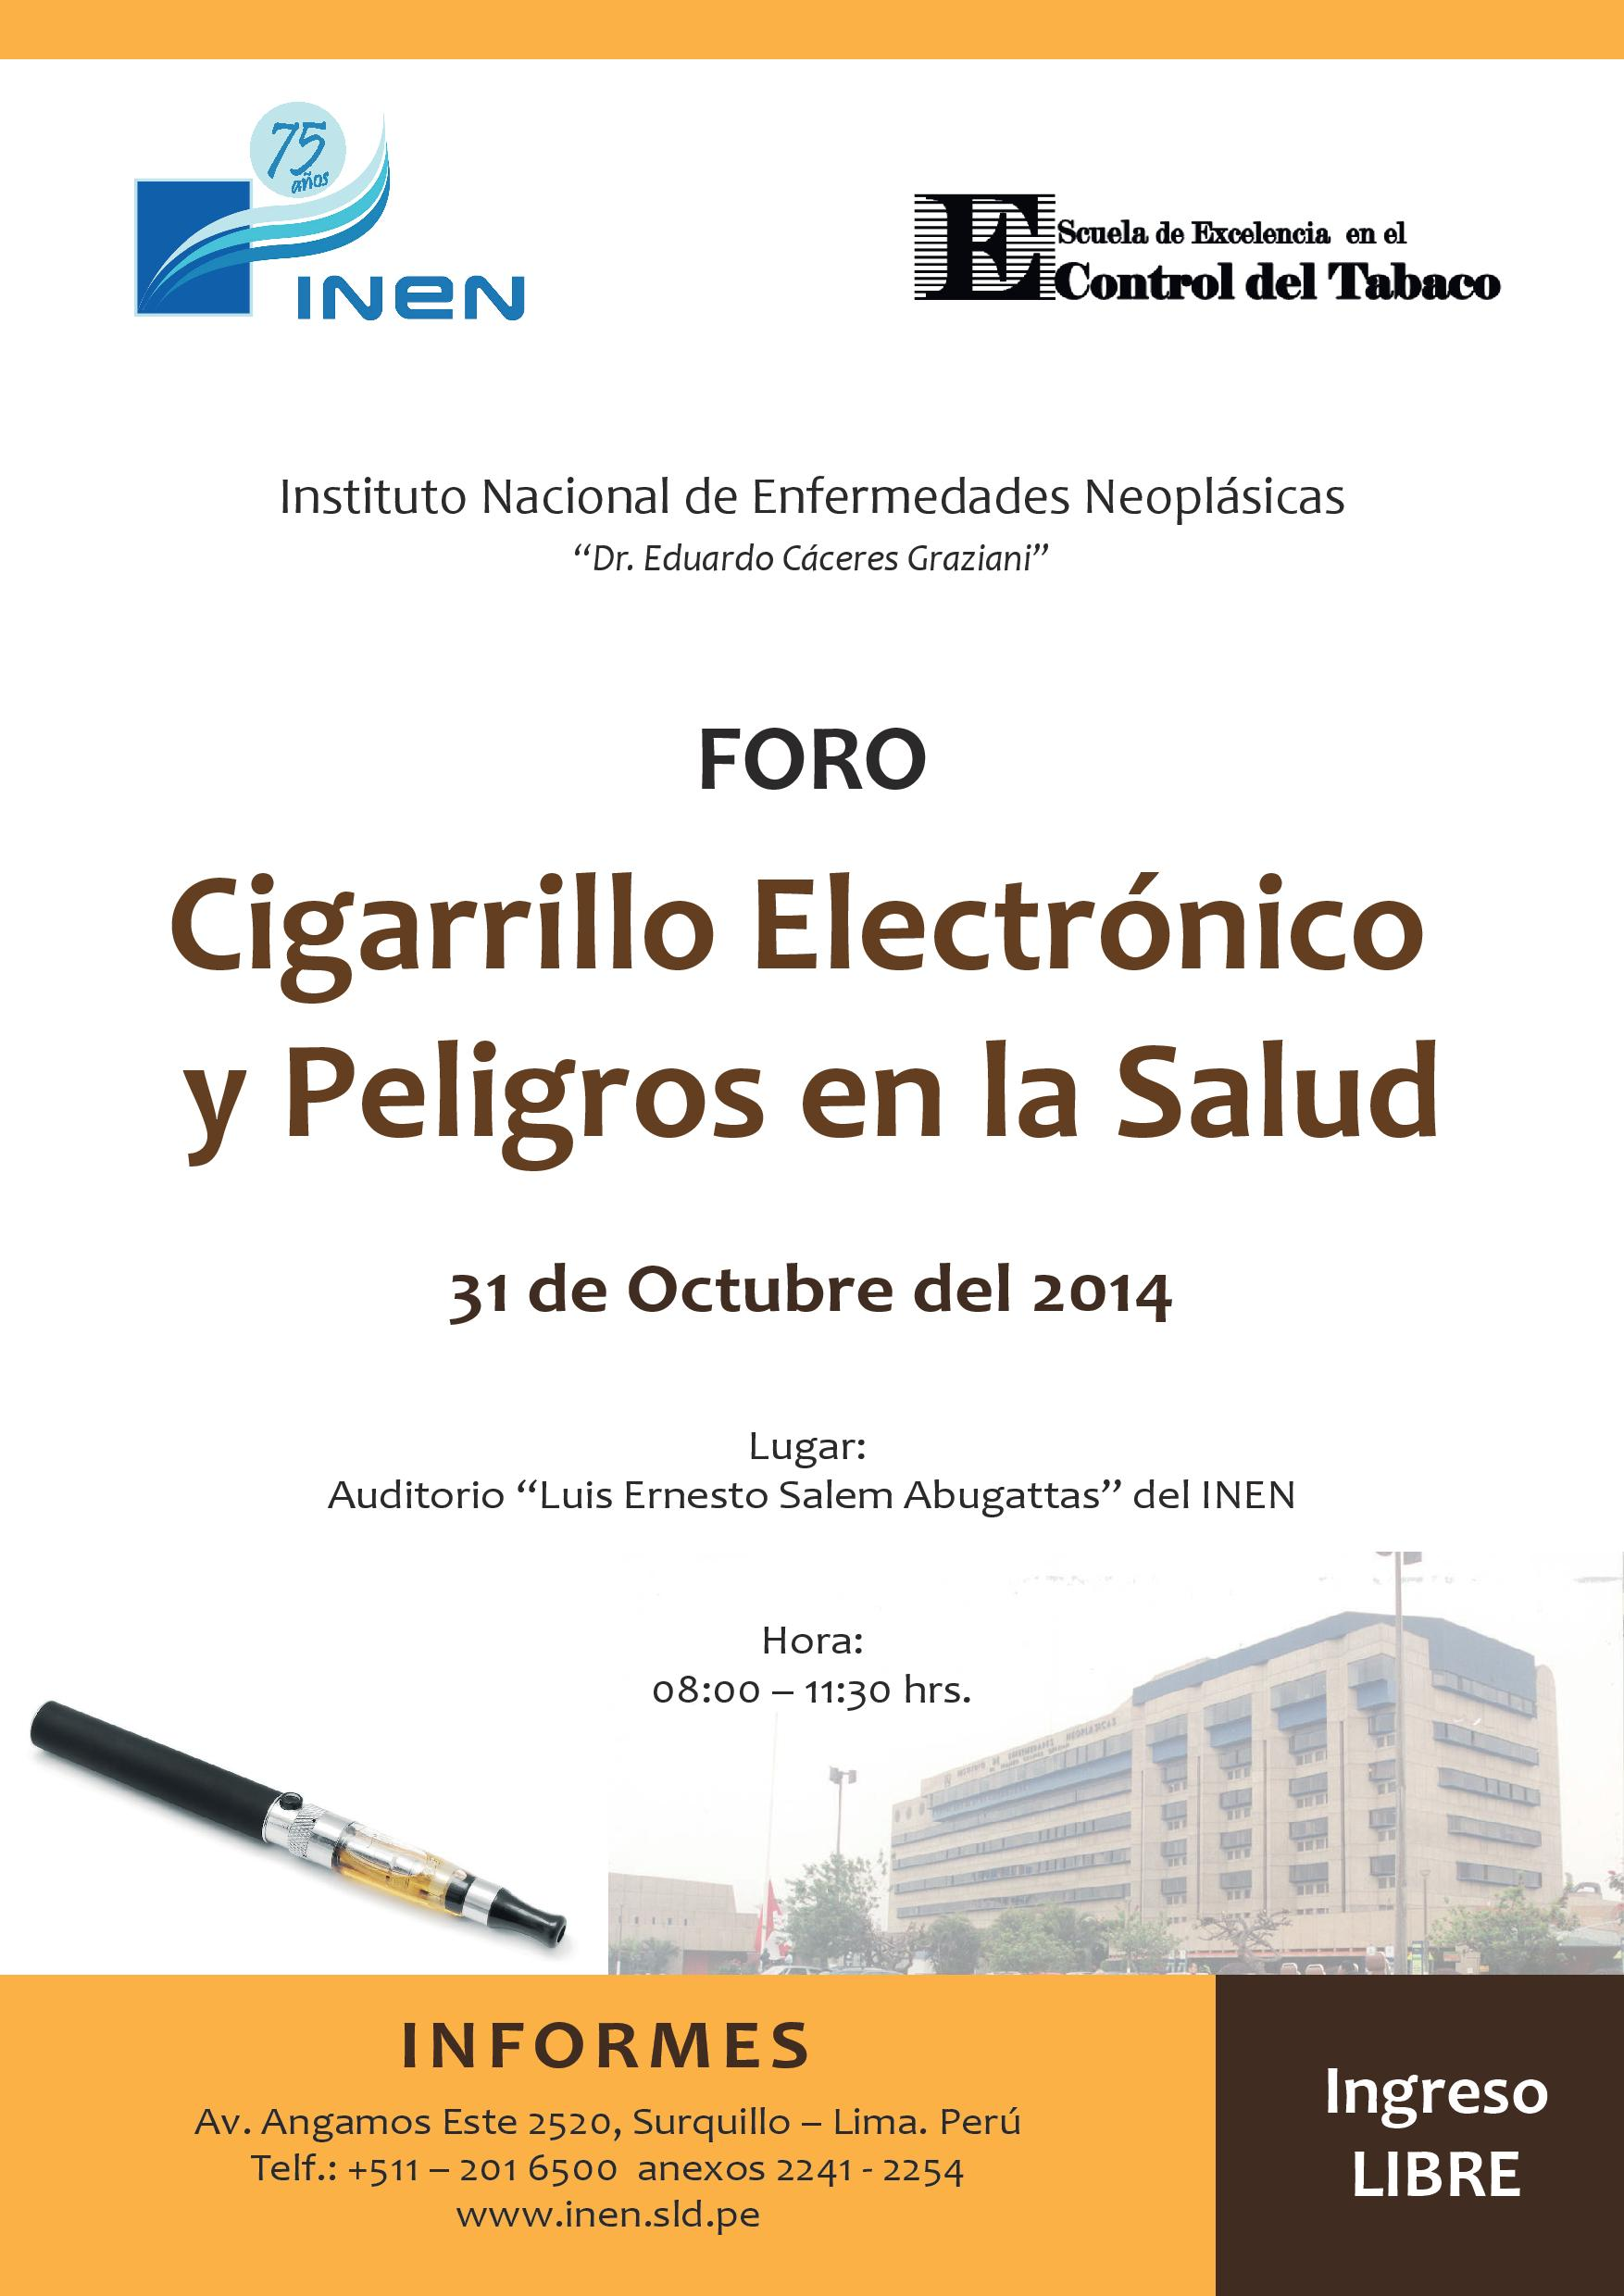 29102014Afiche Cigarrillo Electronico copia-page-001.jpg